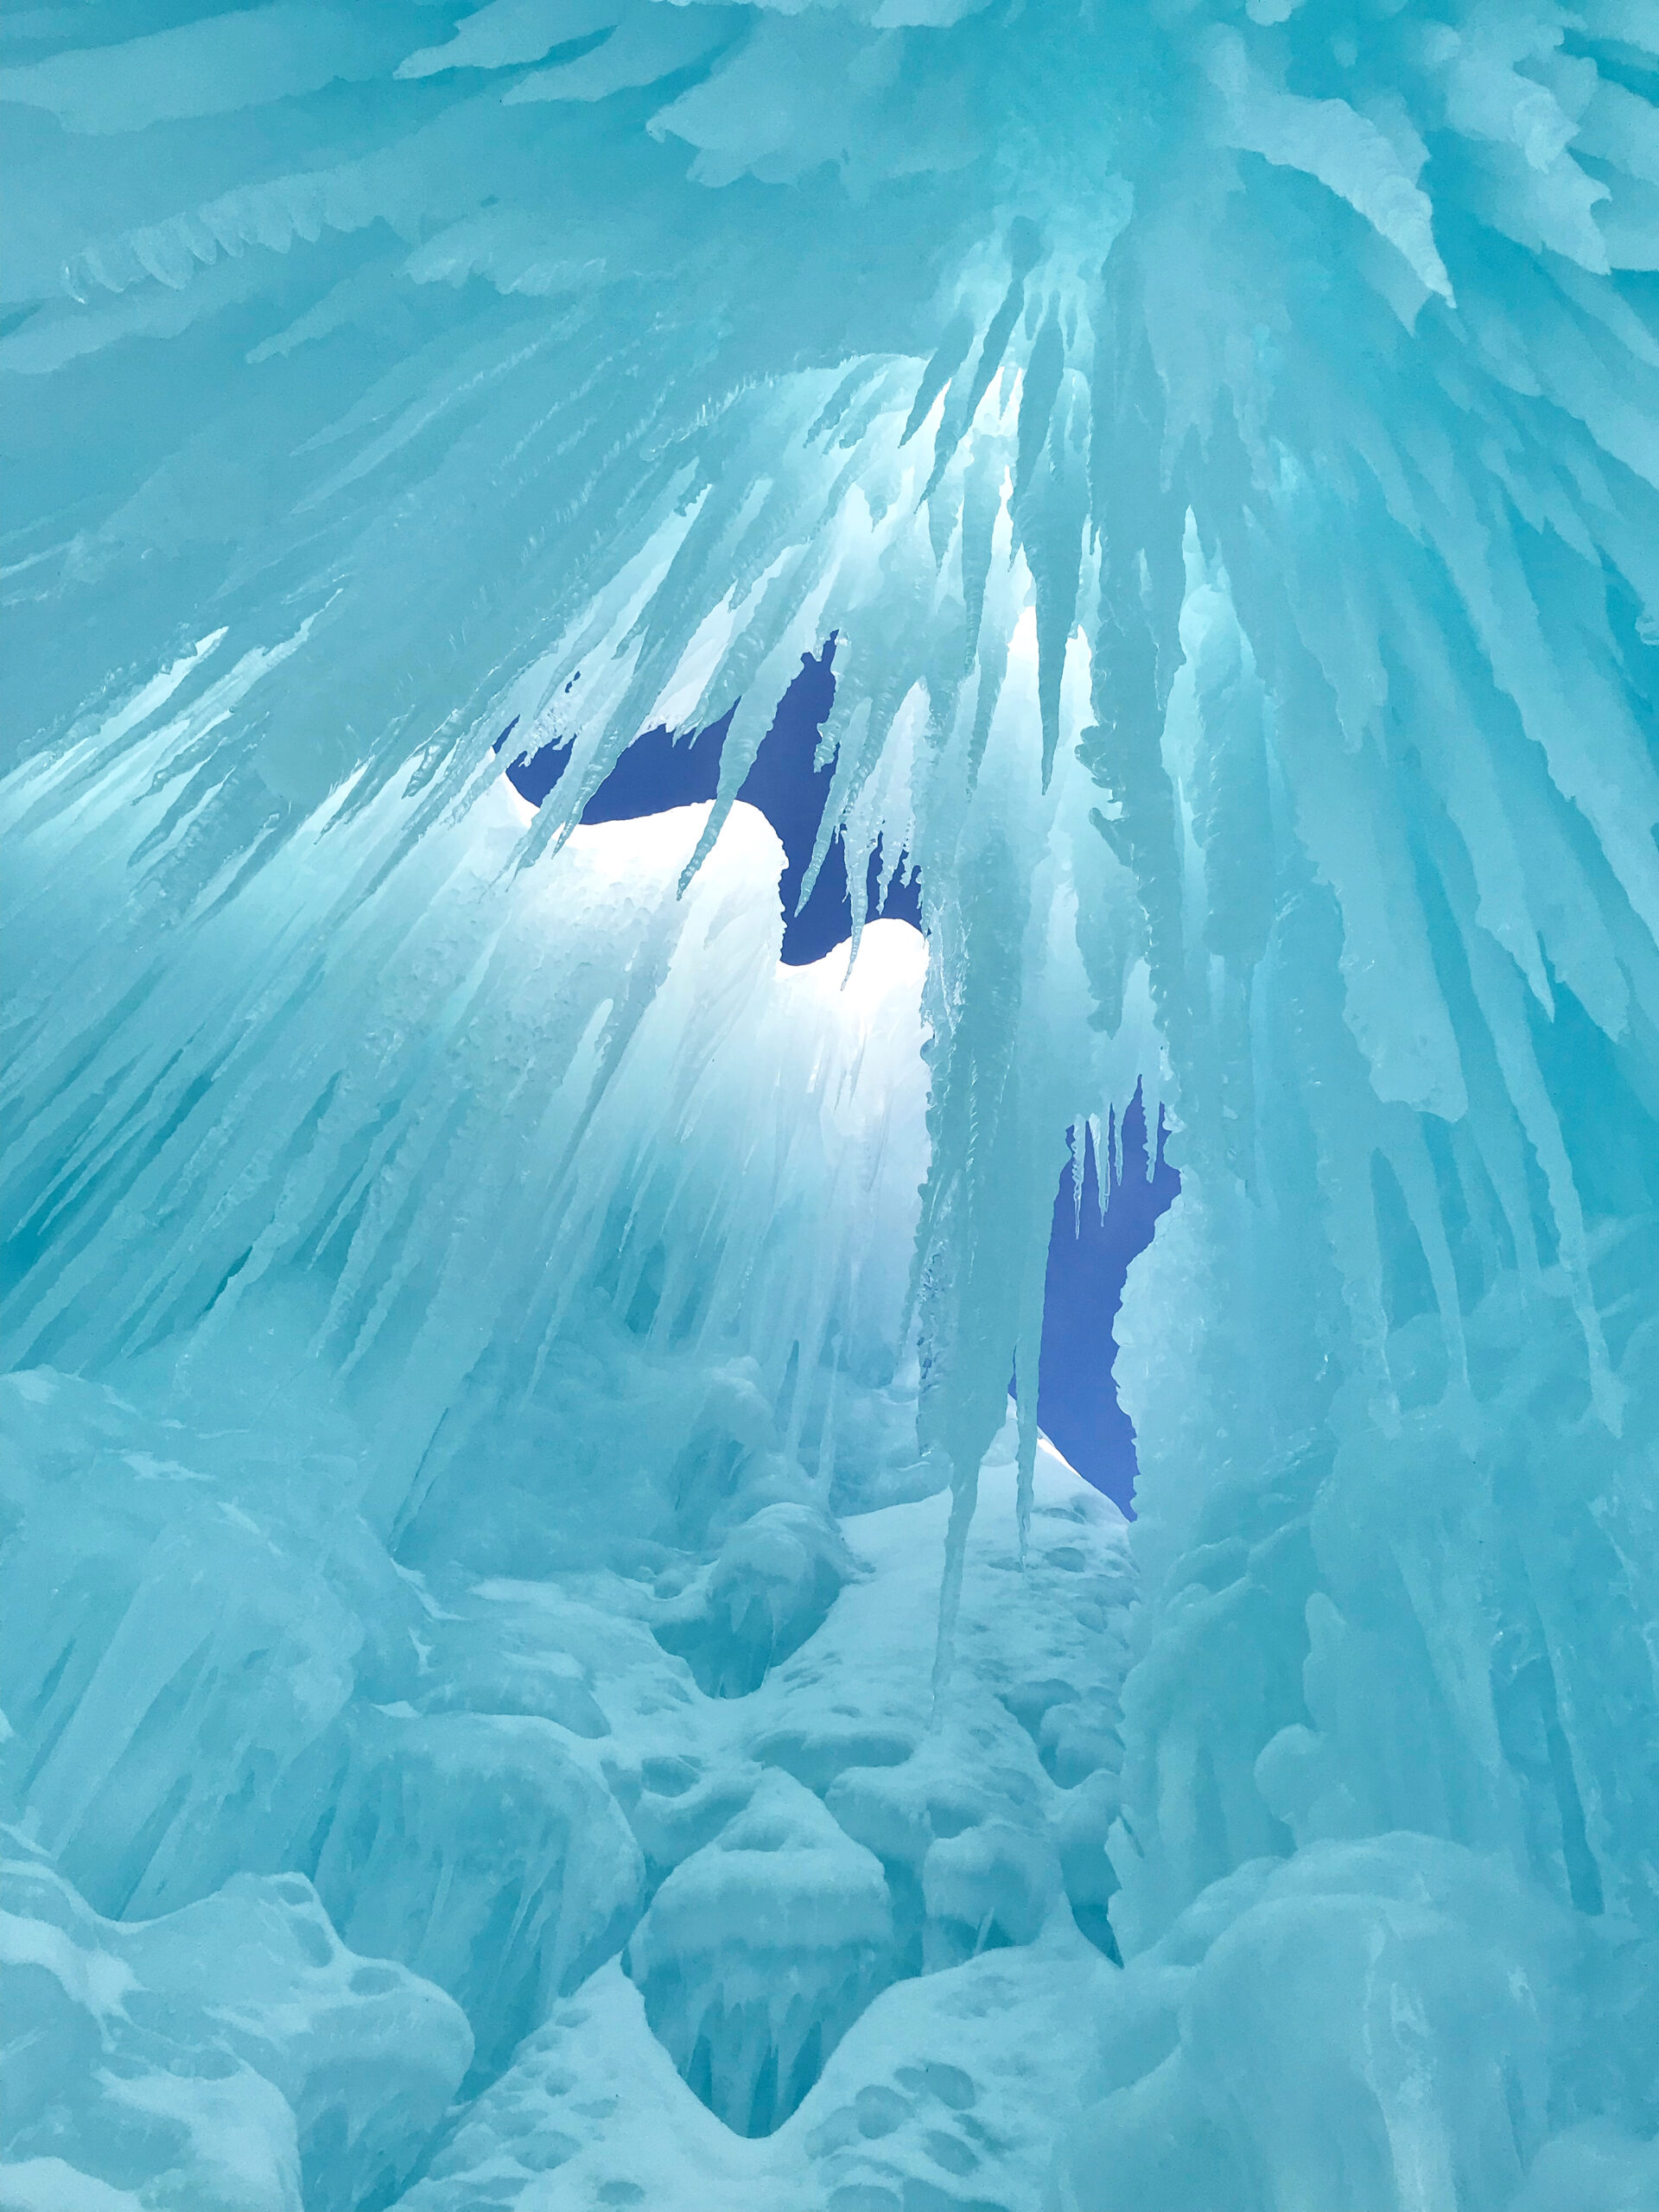 where are the ice castles located, ice castle ticket prices, winter getaways from nyc real life Arendelle